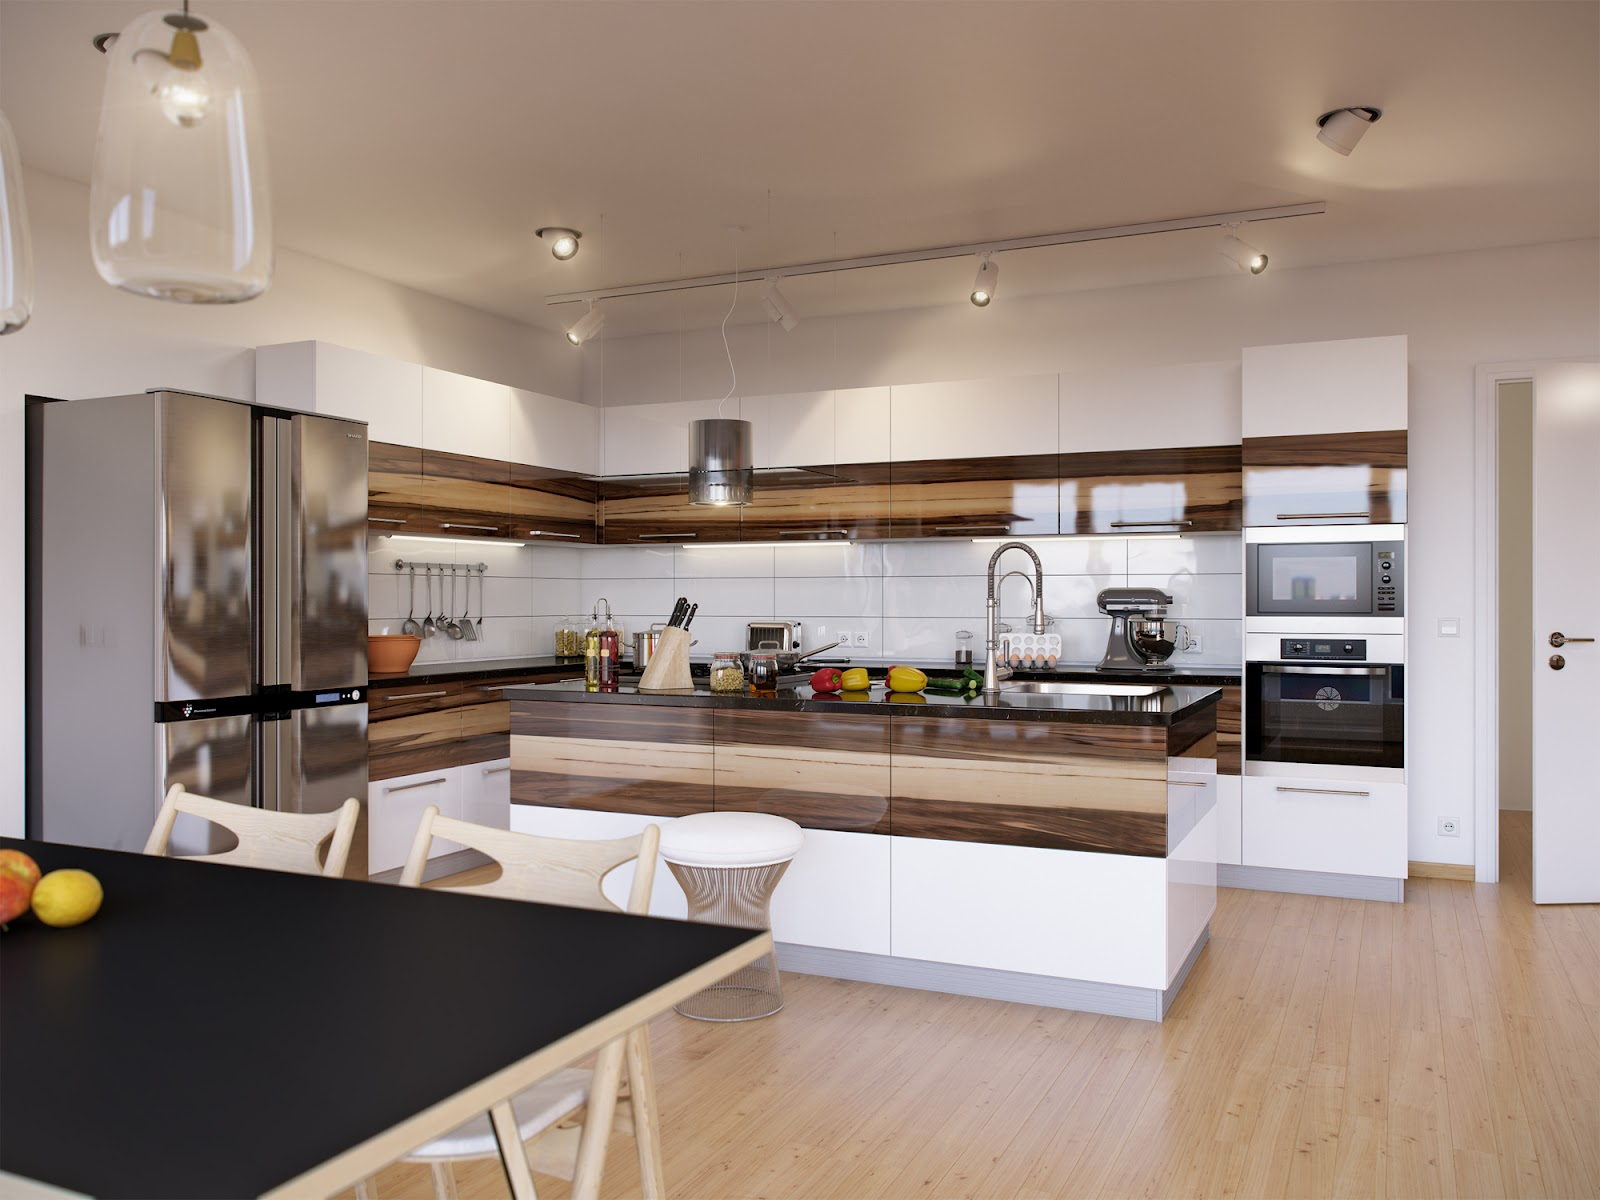 Walnut and white gloss kitchen